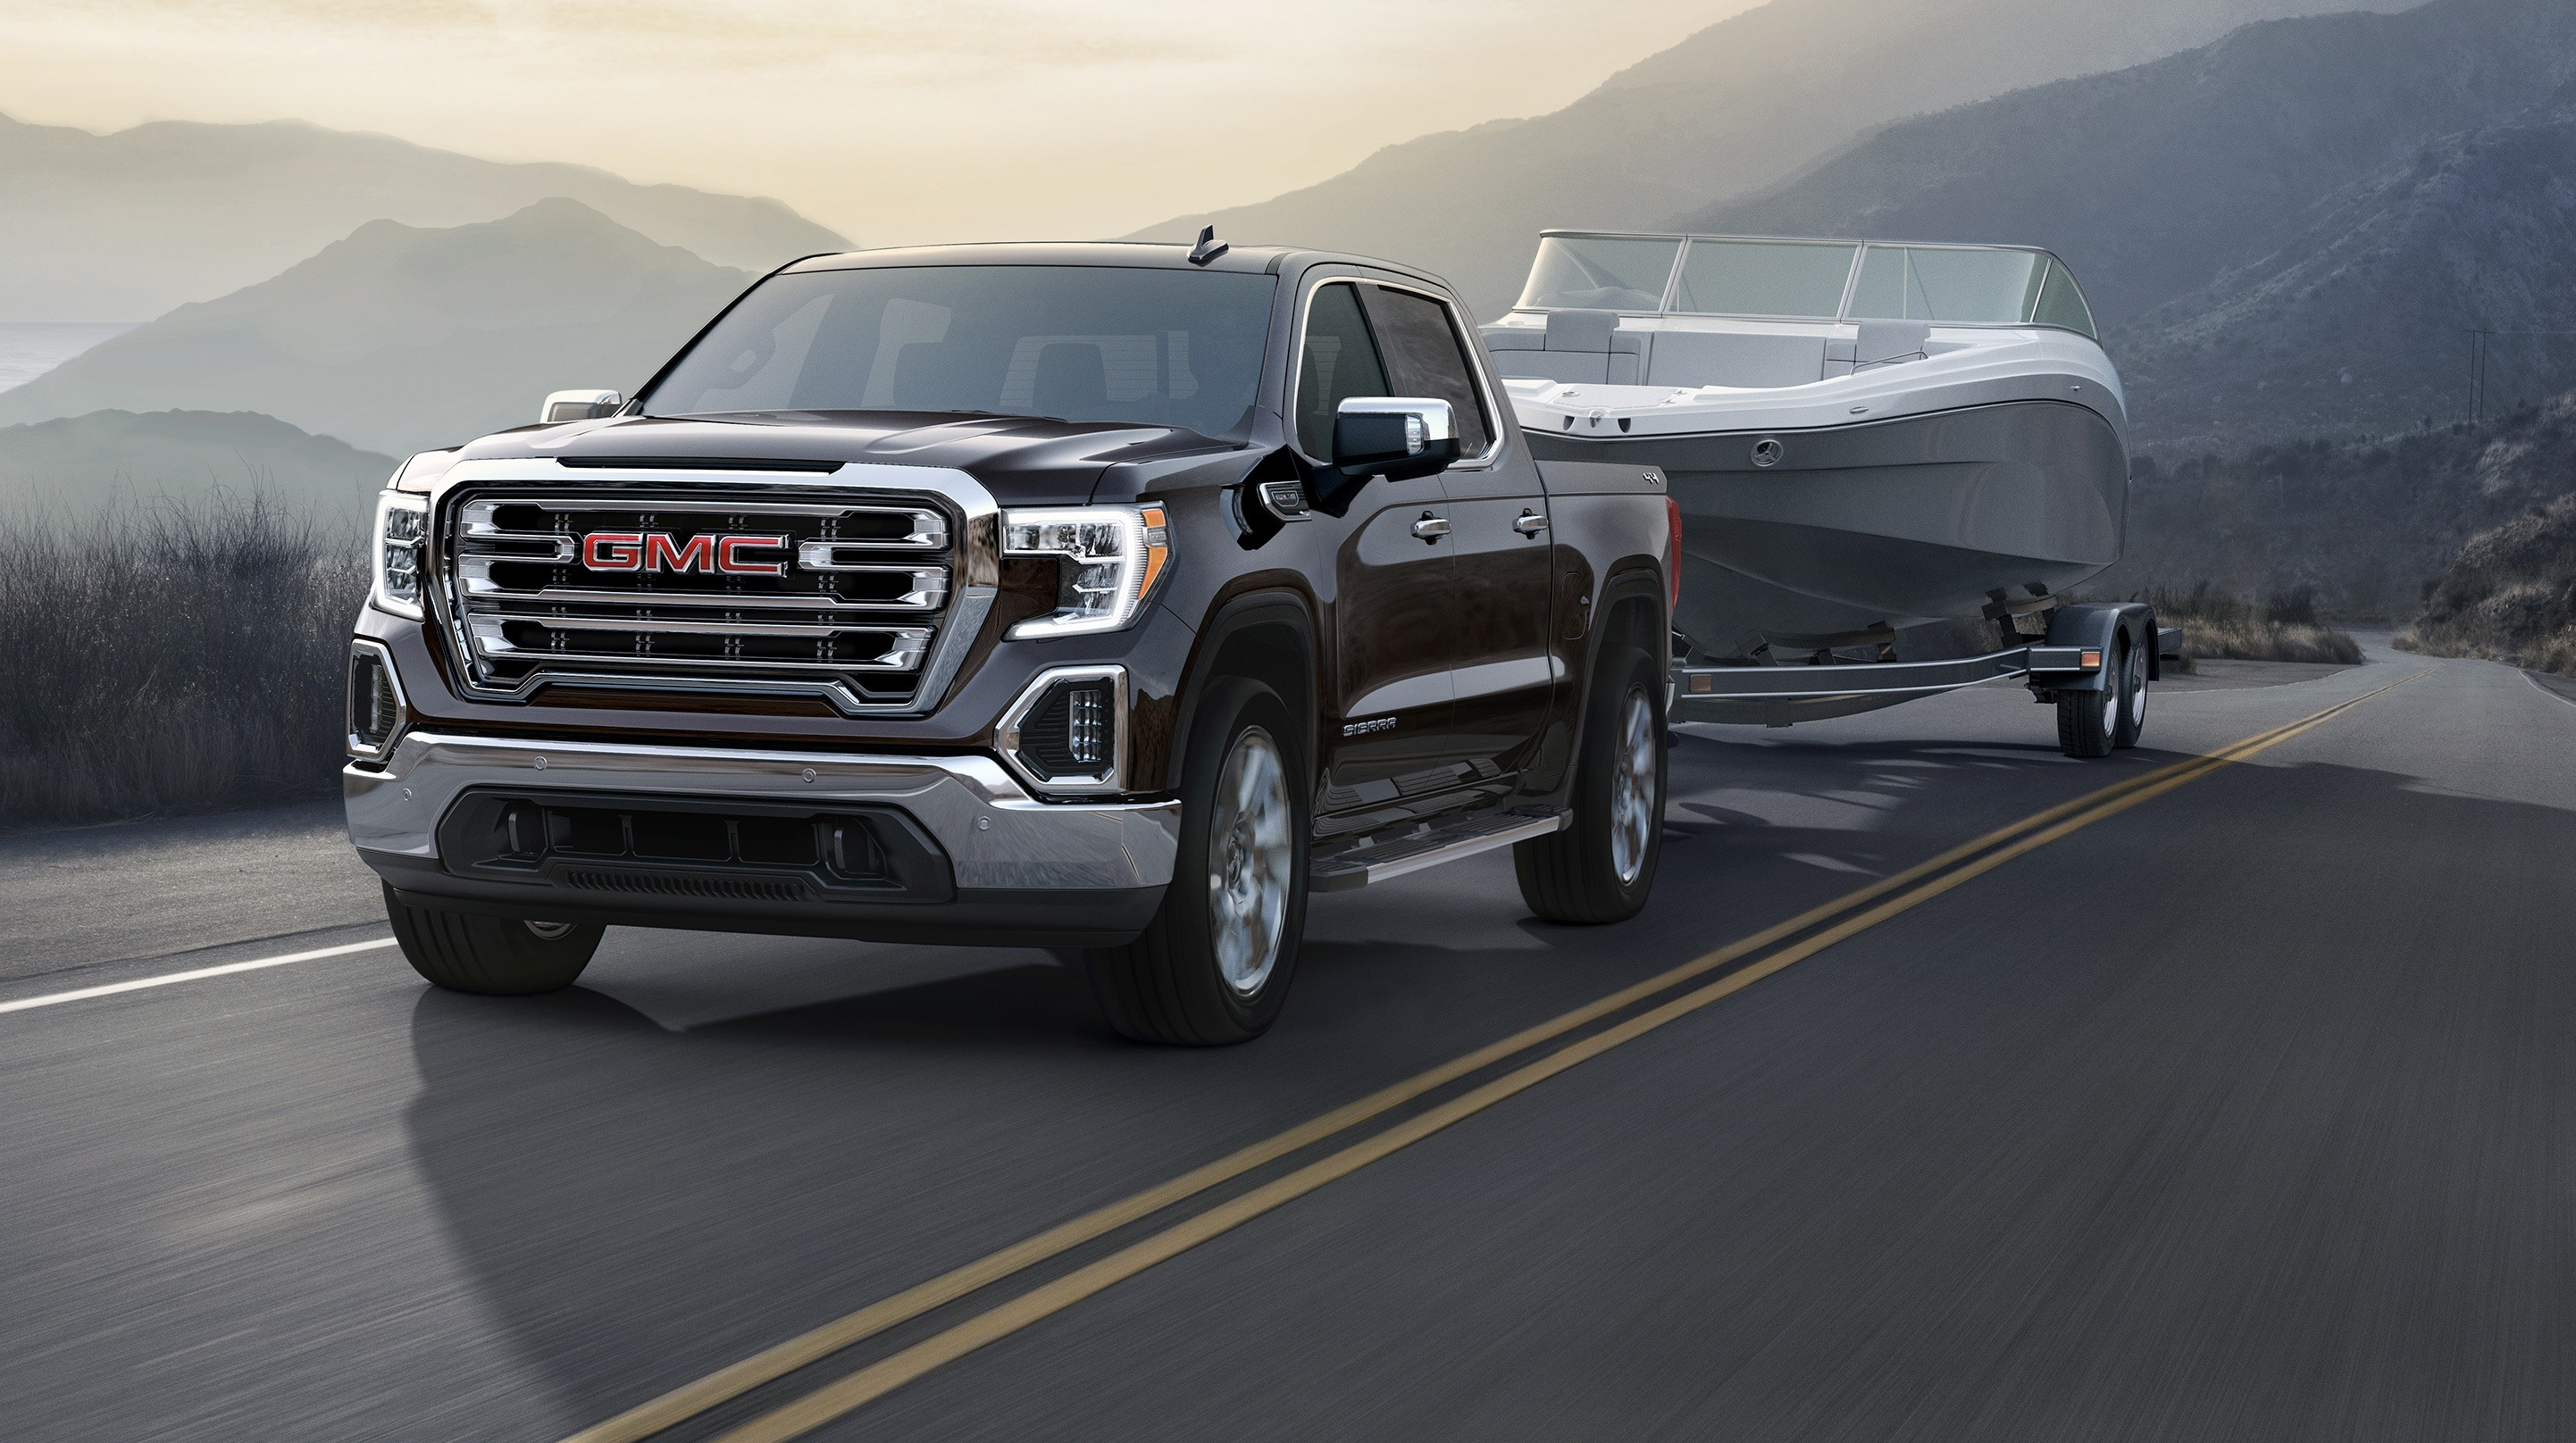 2019-GMC-Sierra-Elevation-5